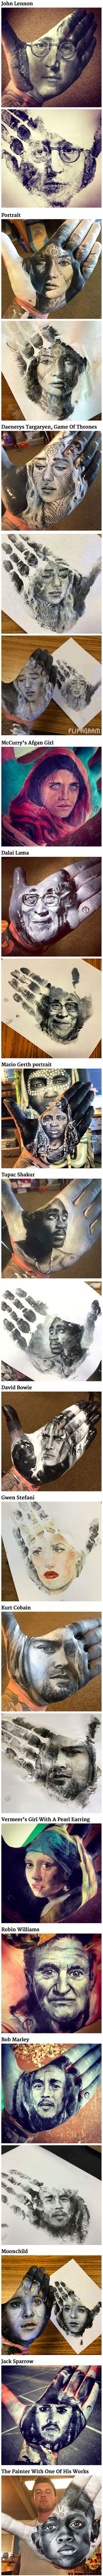 """Instead of painting directly on paper, first-grade school teacher Russel Powell paints realistic portraits directly on his hand, then using it as a stamp. The San Jose-based teacher-artist paints quickly enough that the paint doesn't dry, letting his palm-lines become part of the piece. Powell calls this process """"hand-stamping,"""" and even incorporates similar art projects into his classes."""